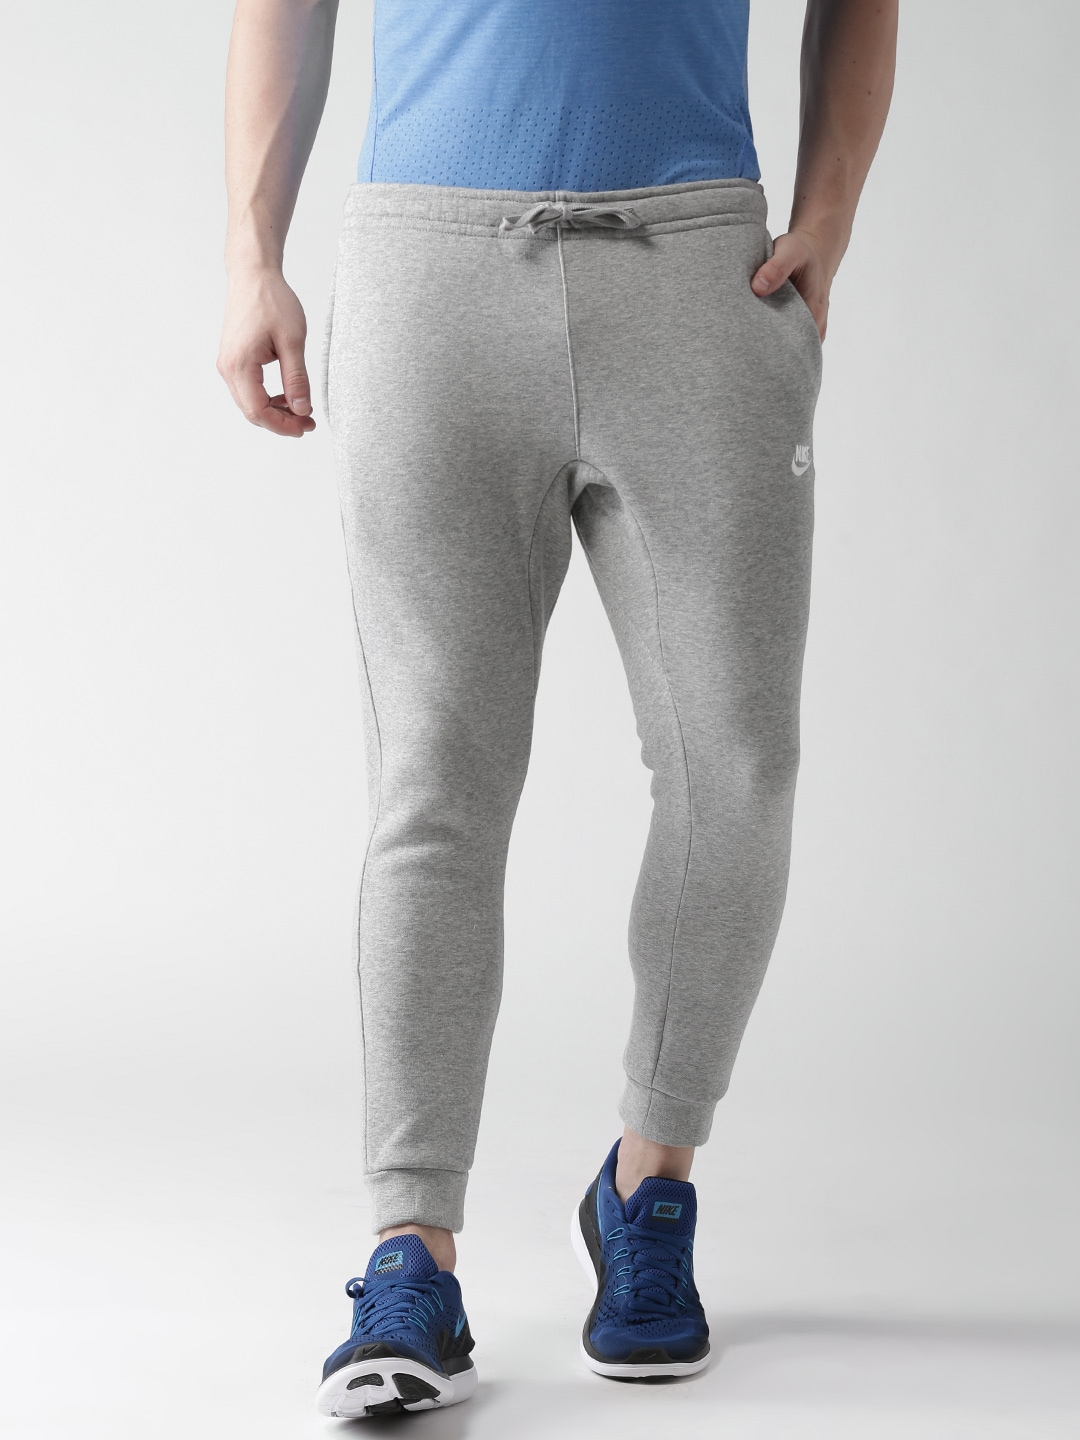 c182a83bf6db8 Nike Apparel - Buy Nike Apparel Online in India